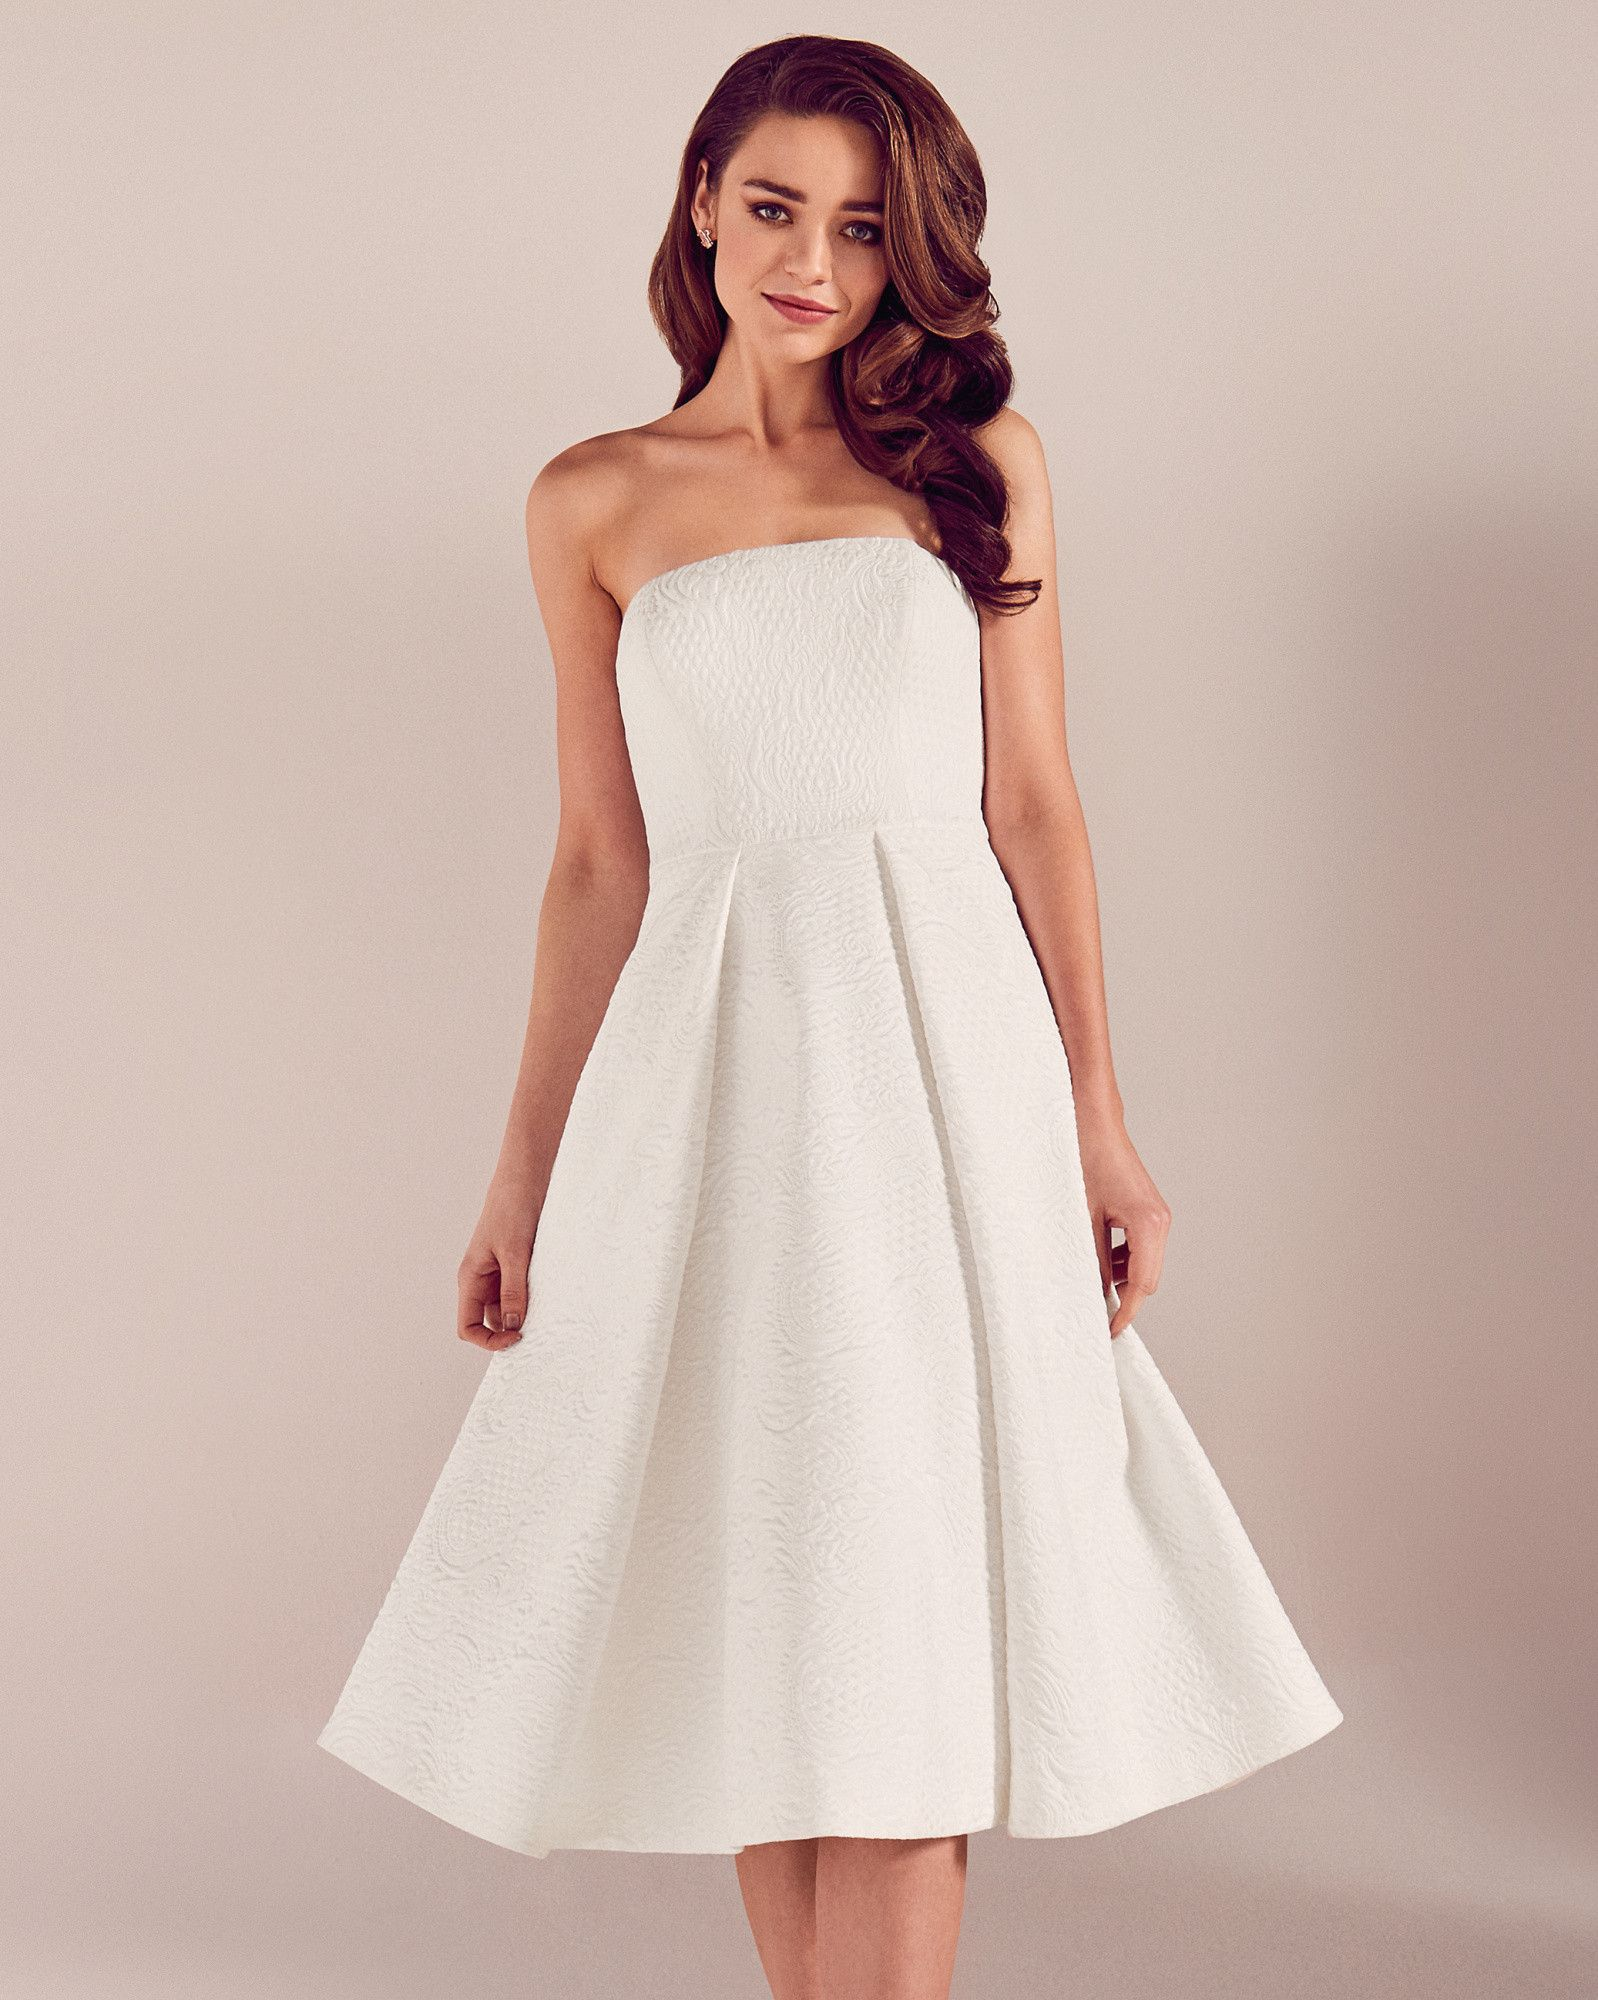 Jacquard midi wedding dress - White | SS17 Tie The Knot | Ted Baker ...